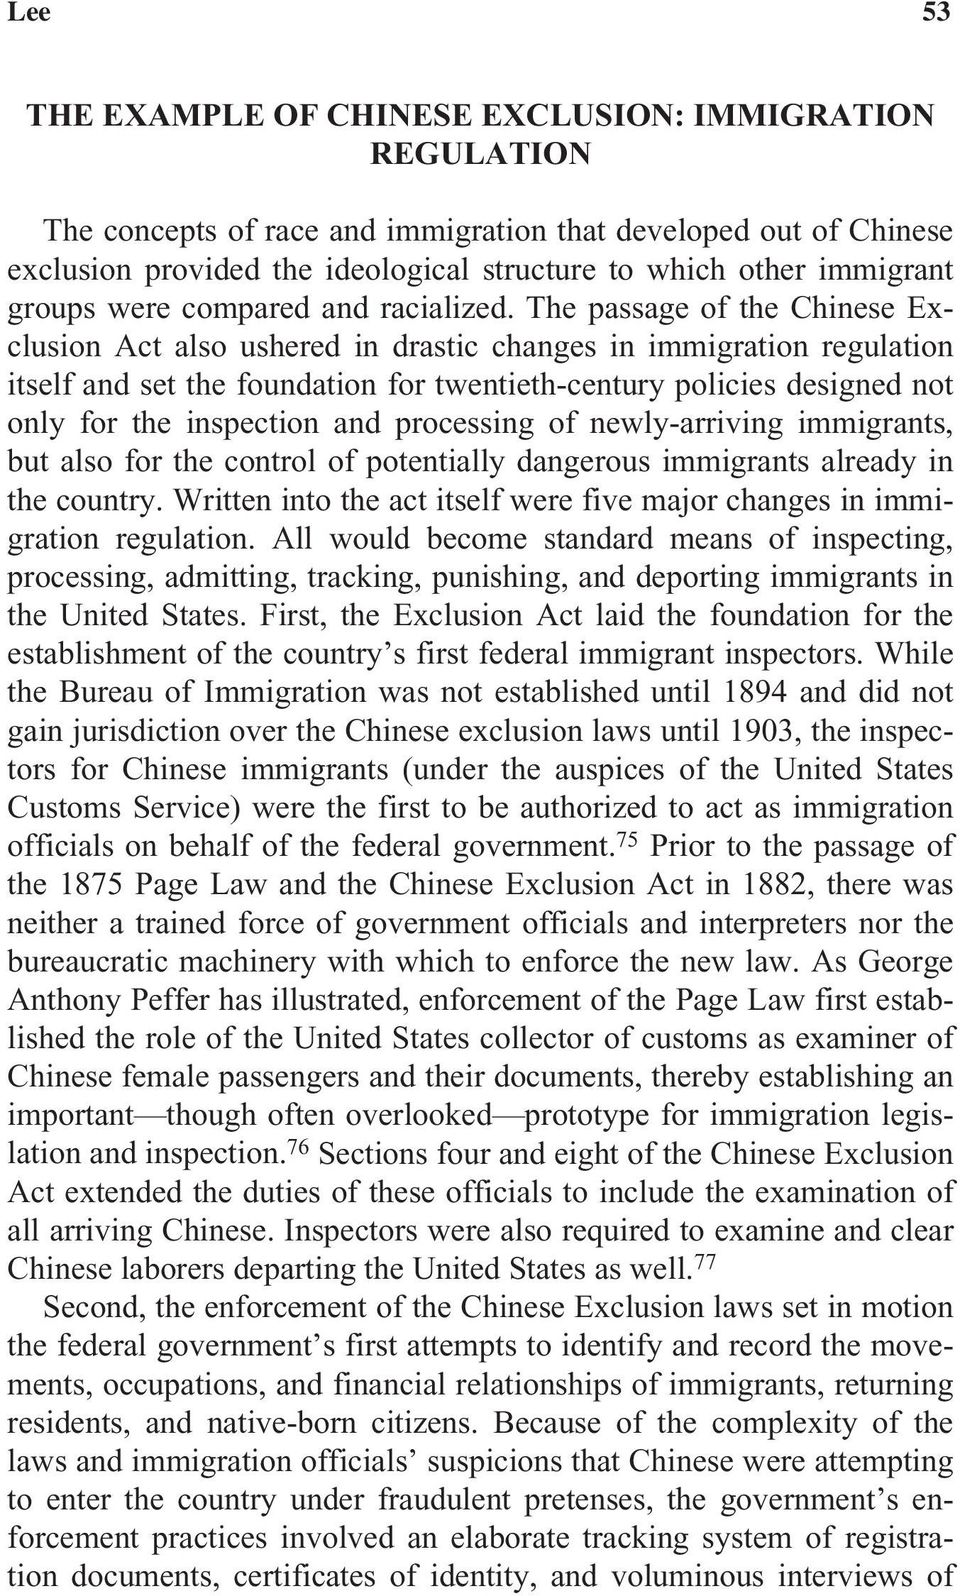 The passage of the Chinese Exclusion Act also ushered in drastic changes in immigration regulation itself and set the foundation for twentieth-century policies designed not only for the inspection